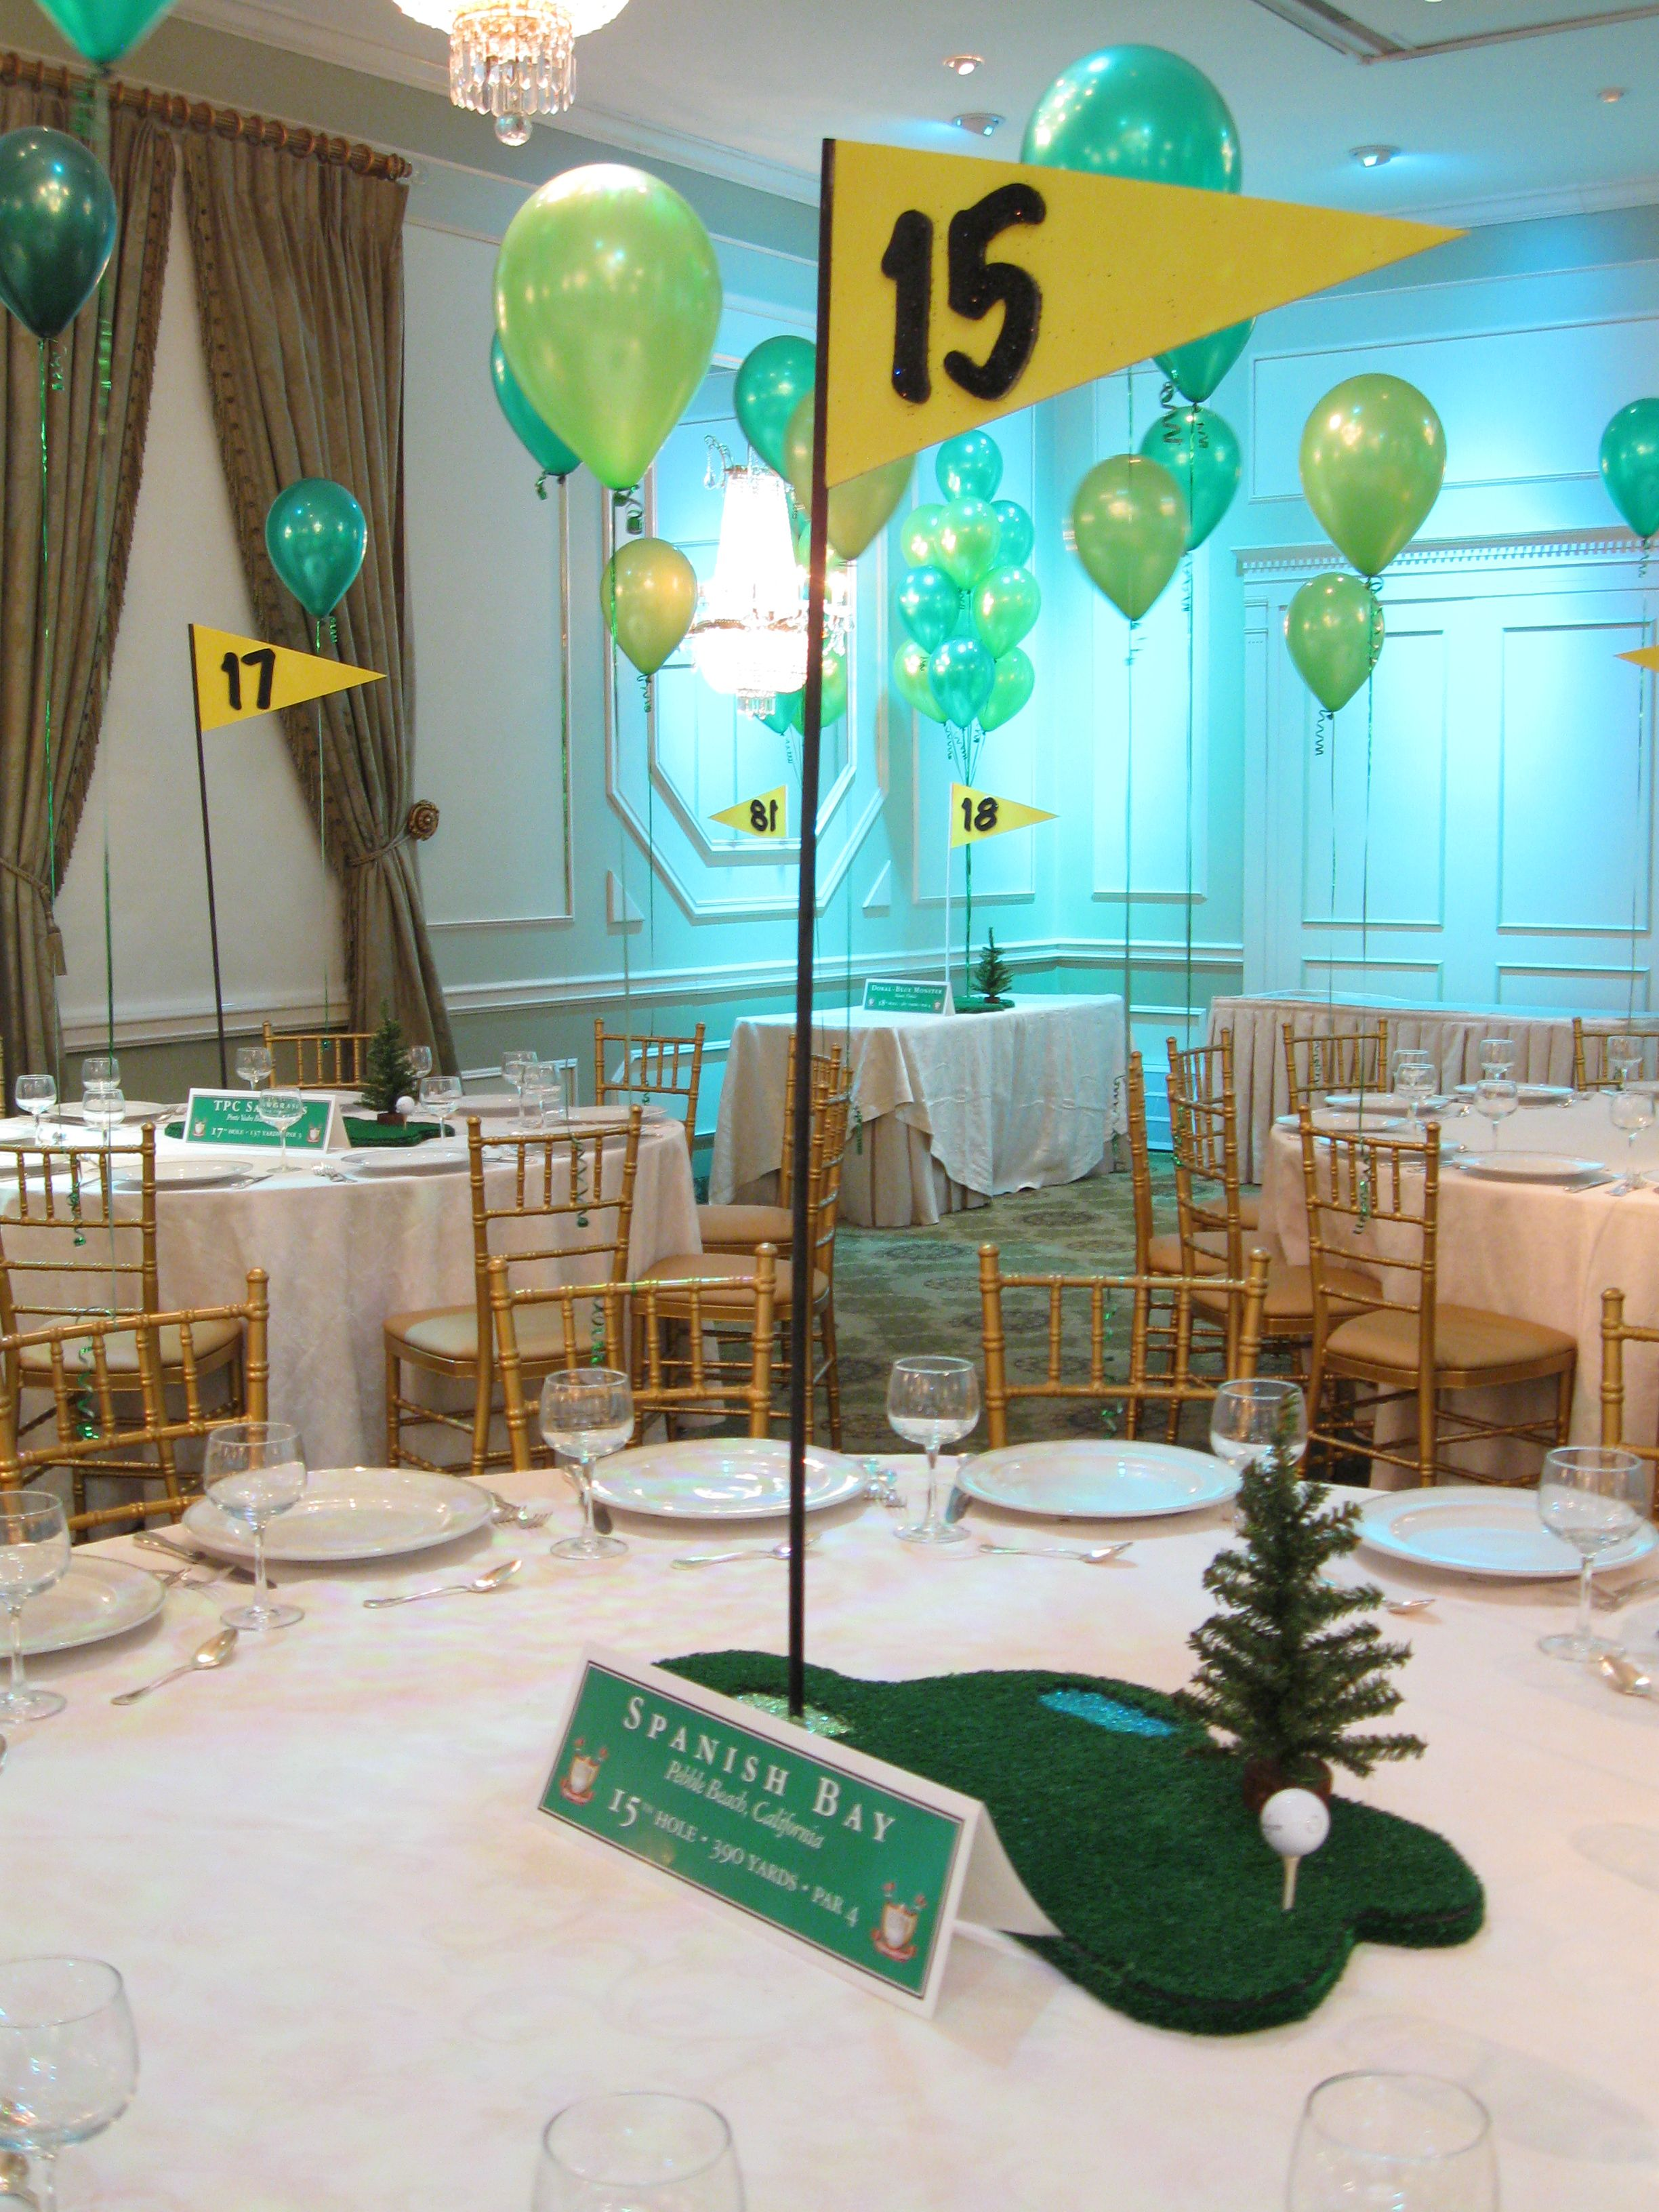 Golf themed centerpiece centerpieces pinterest golf for Golf centerpiece ideas